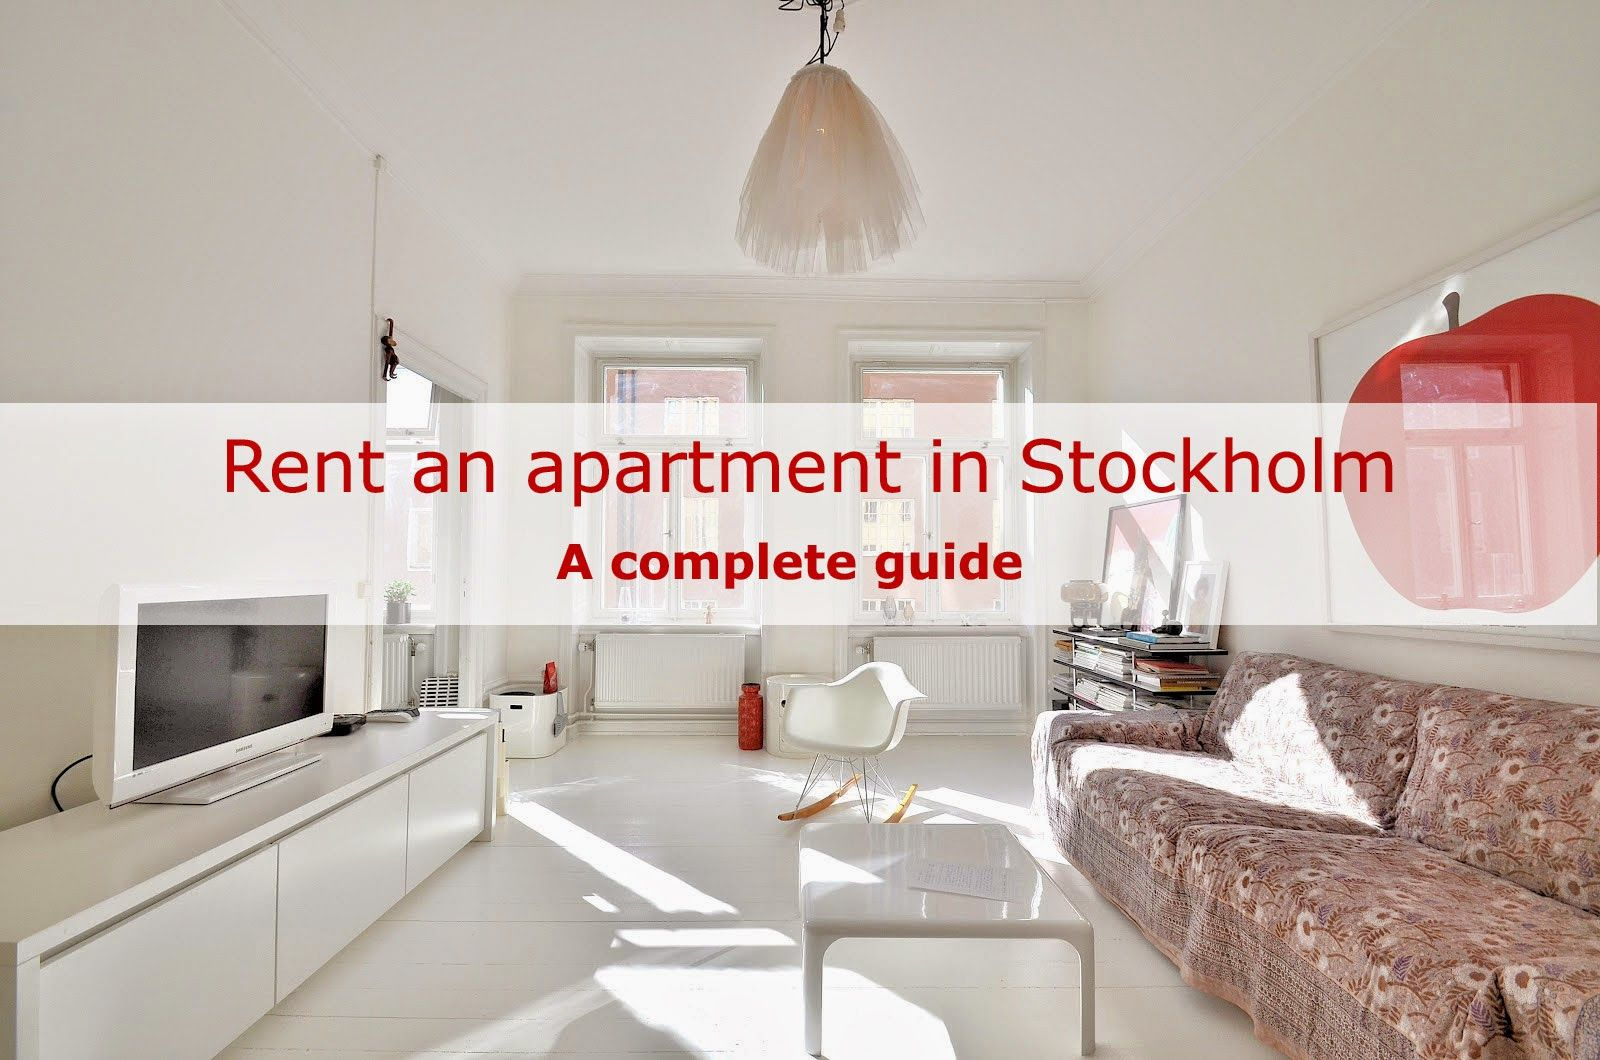 How to rent an apartment in Stockholm Apartments for